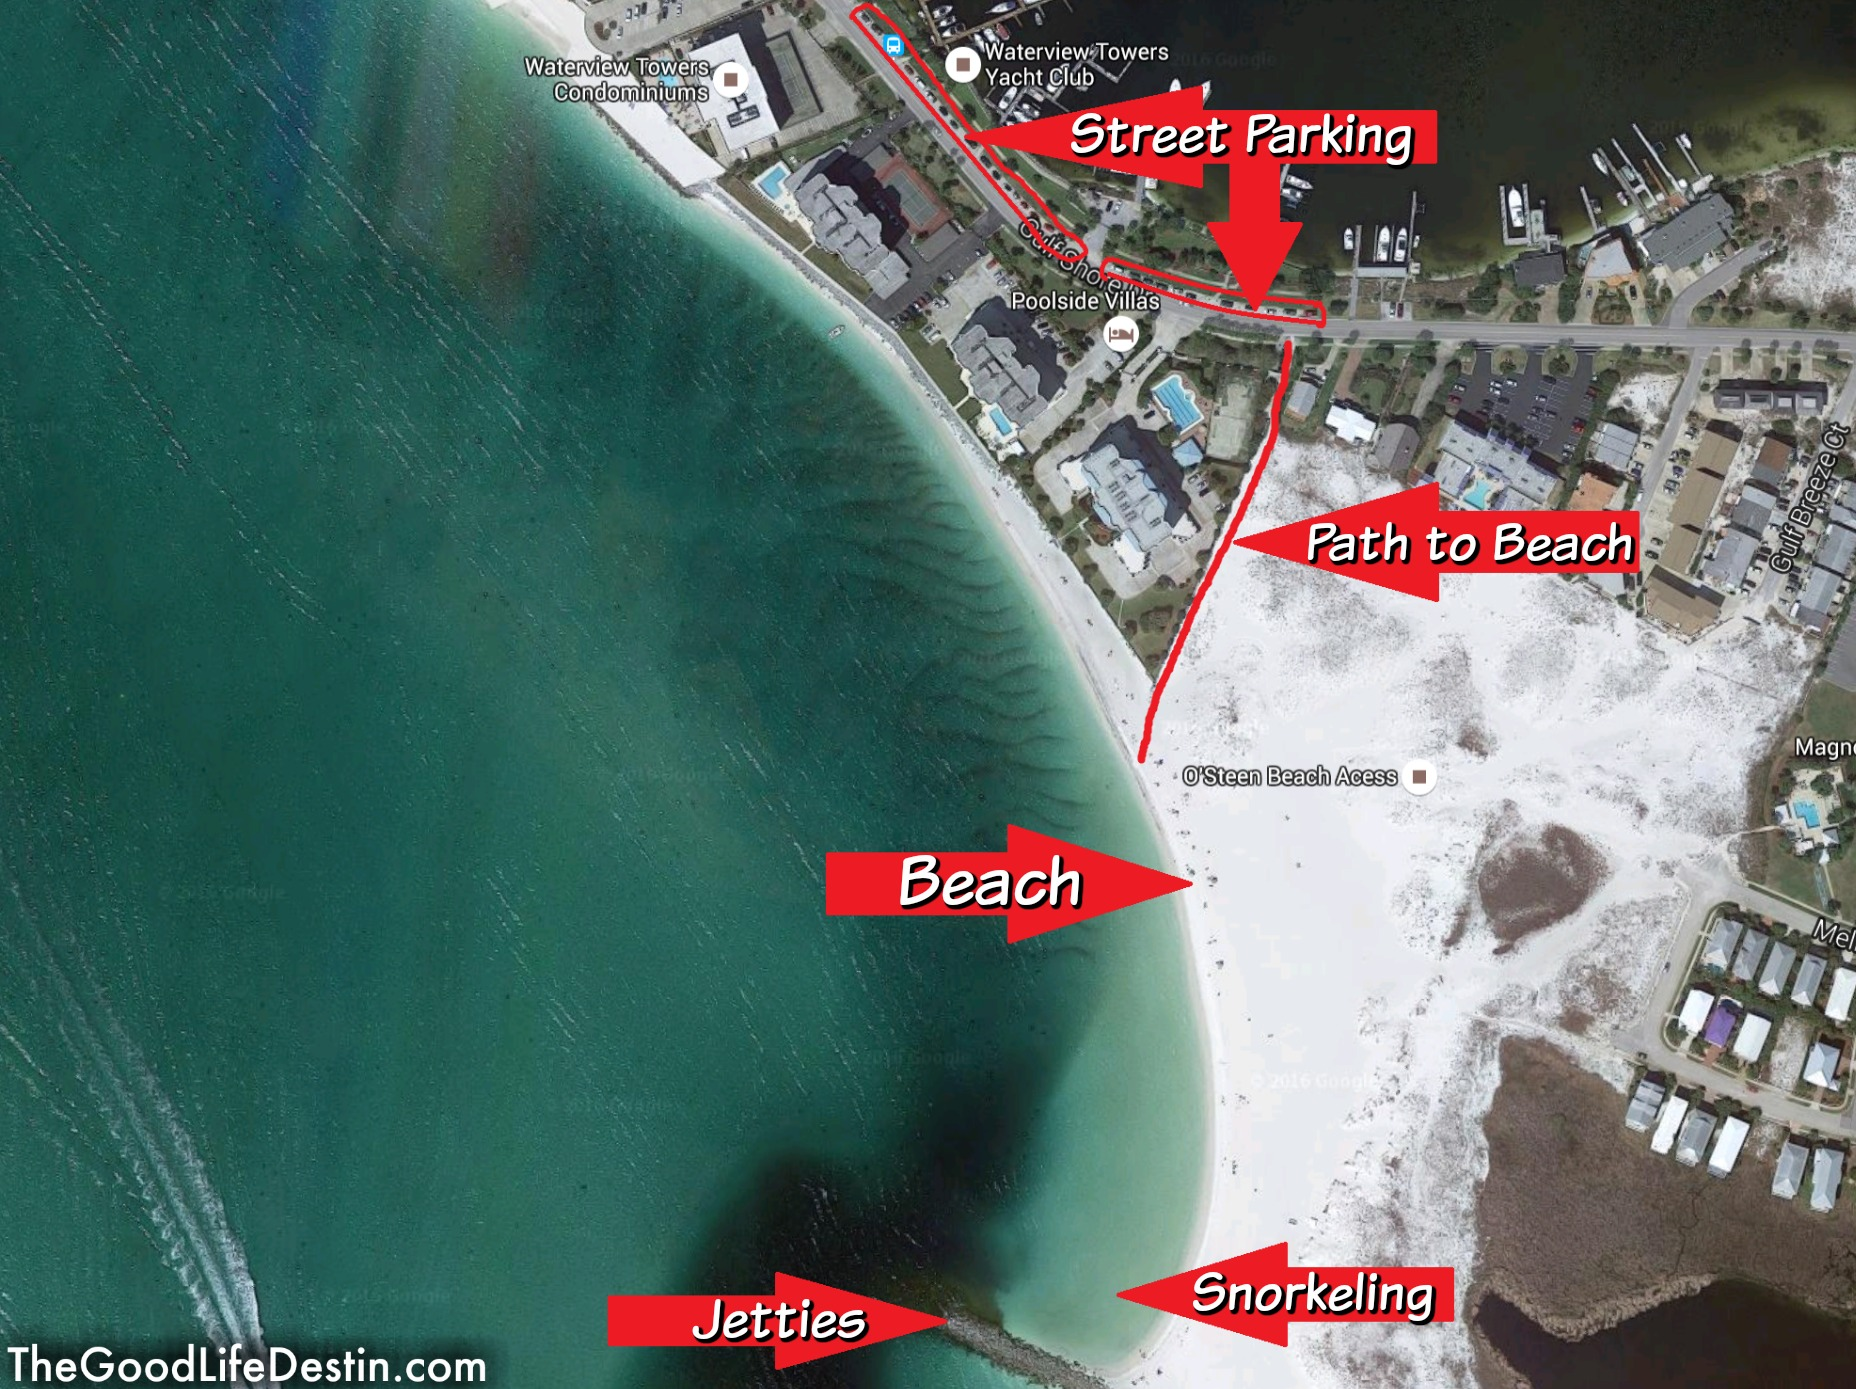 Find Your Perfect Beach In Destin Florida The Good Life Destin - Florida map destin beach